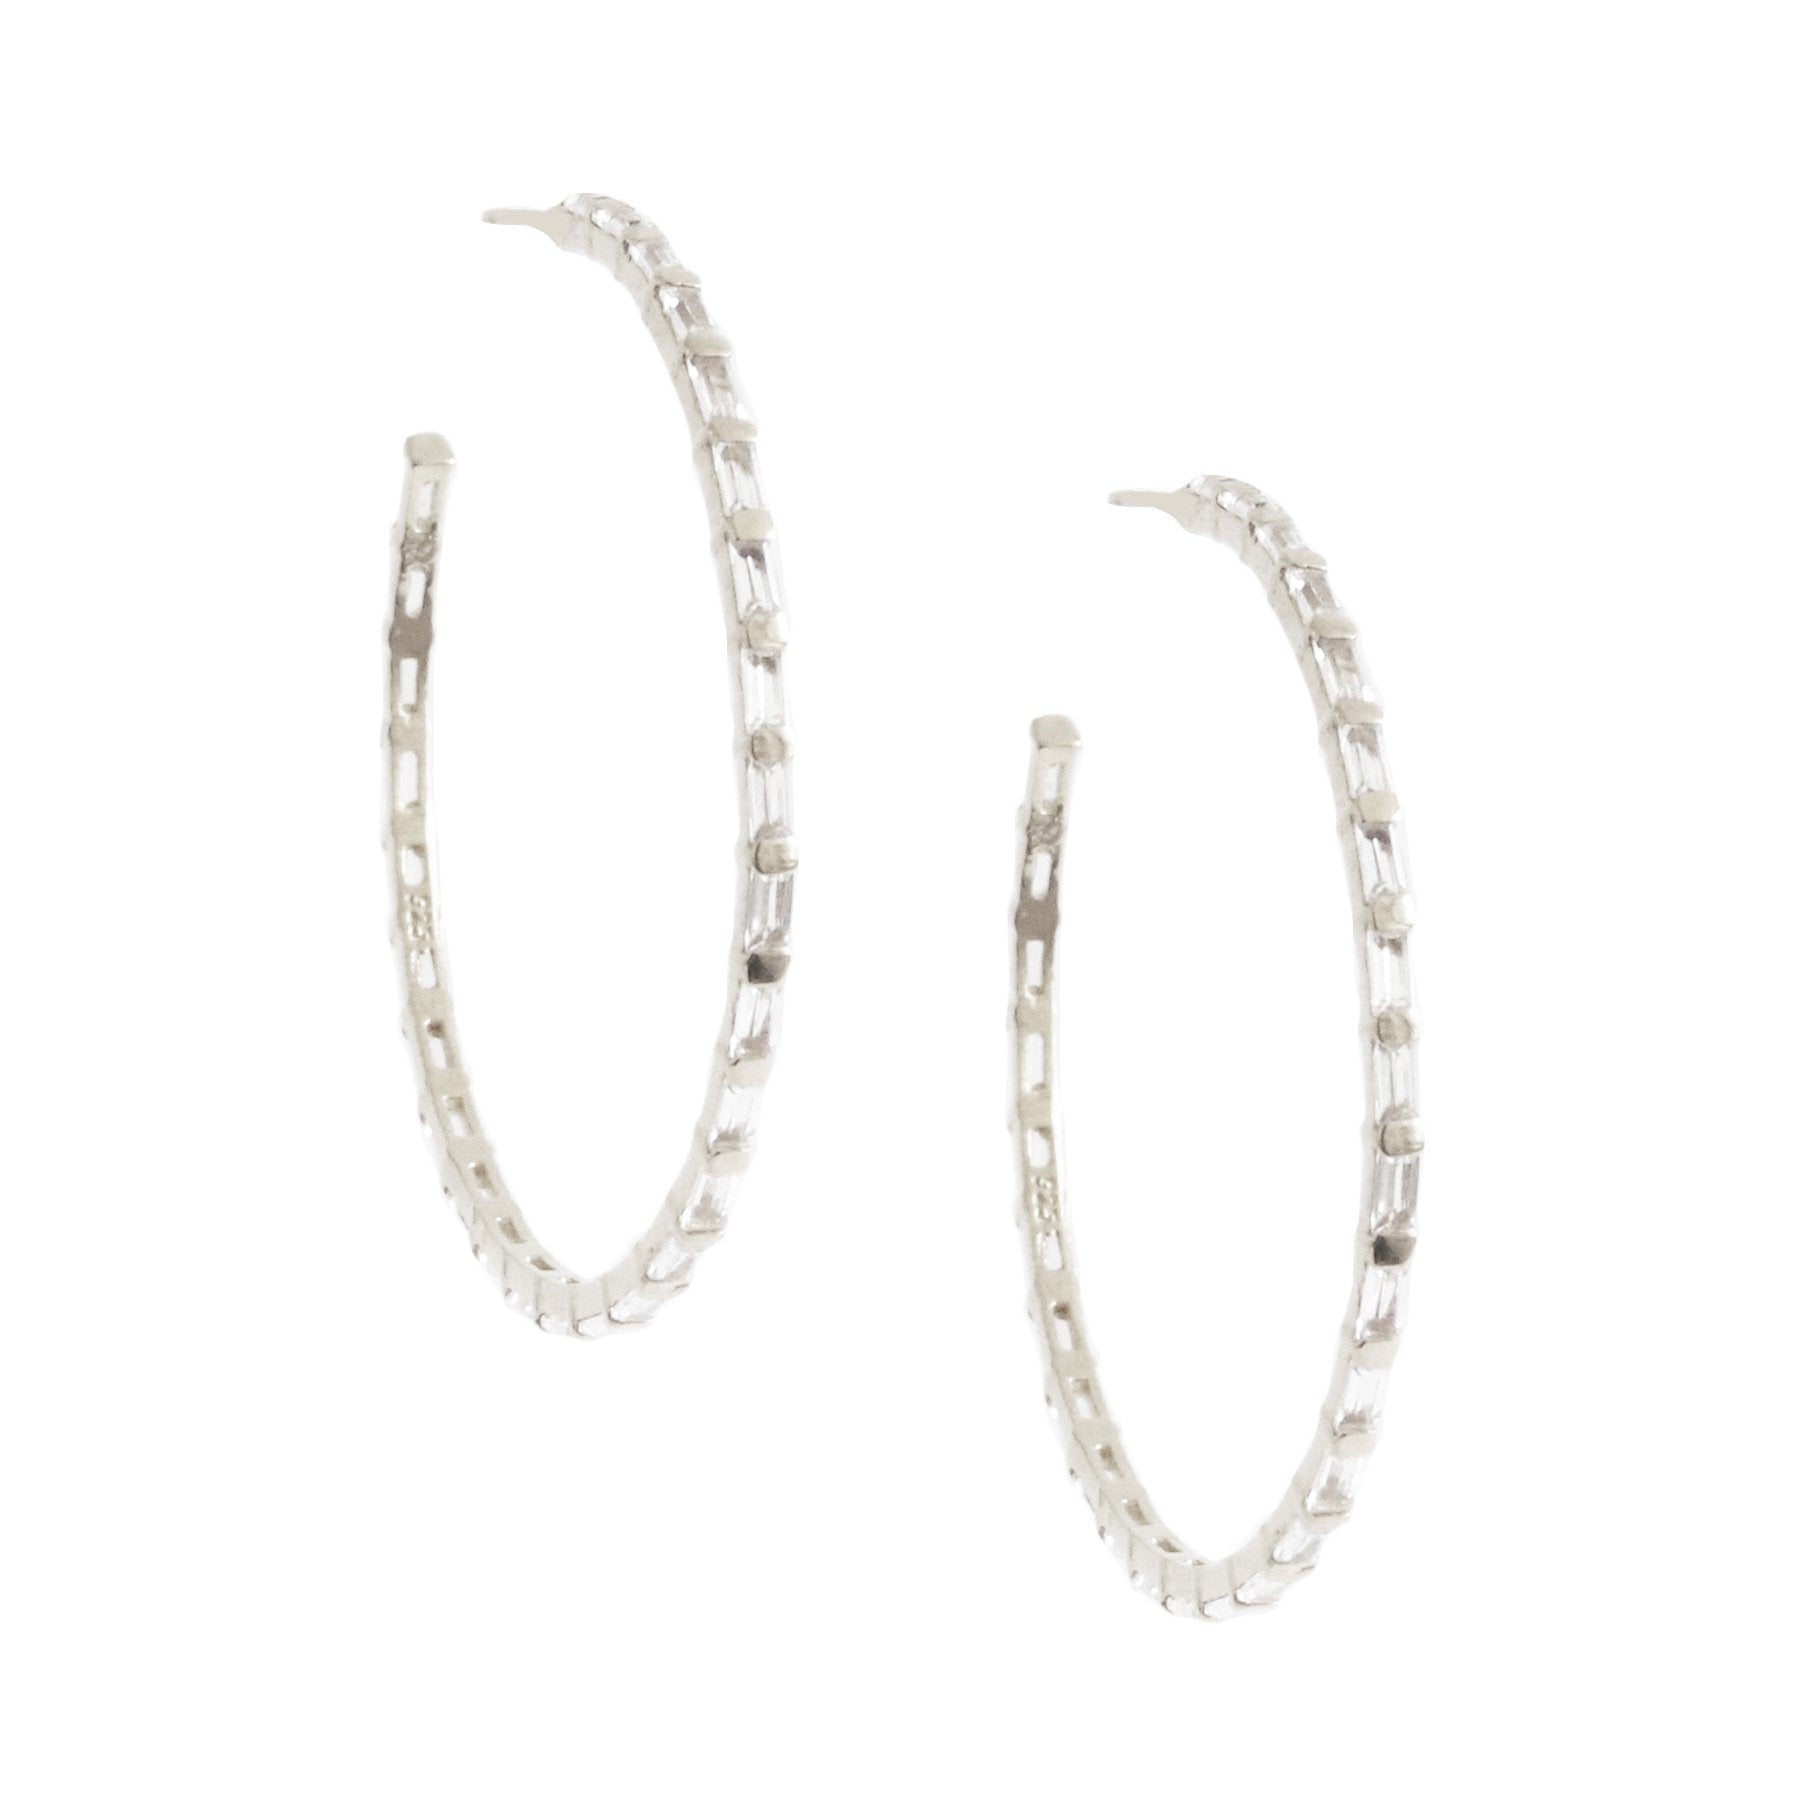 Loyal Studded Large Hoops - White Topaz & Silver - SO PRETTY CARA COTTER